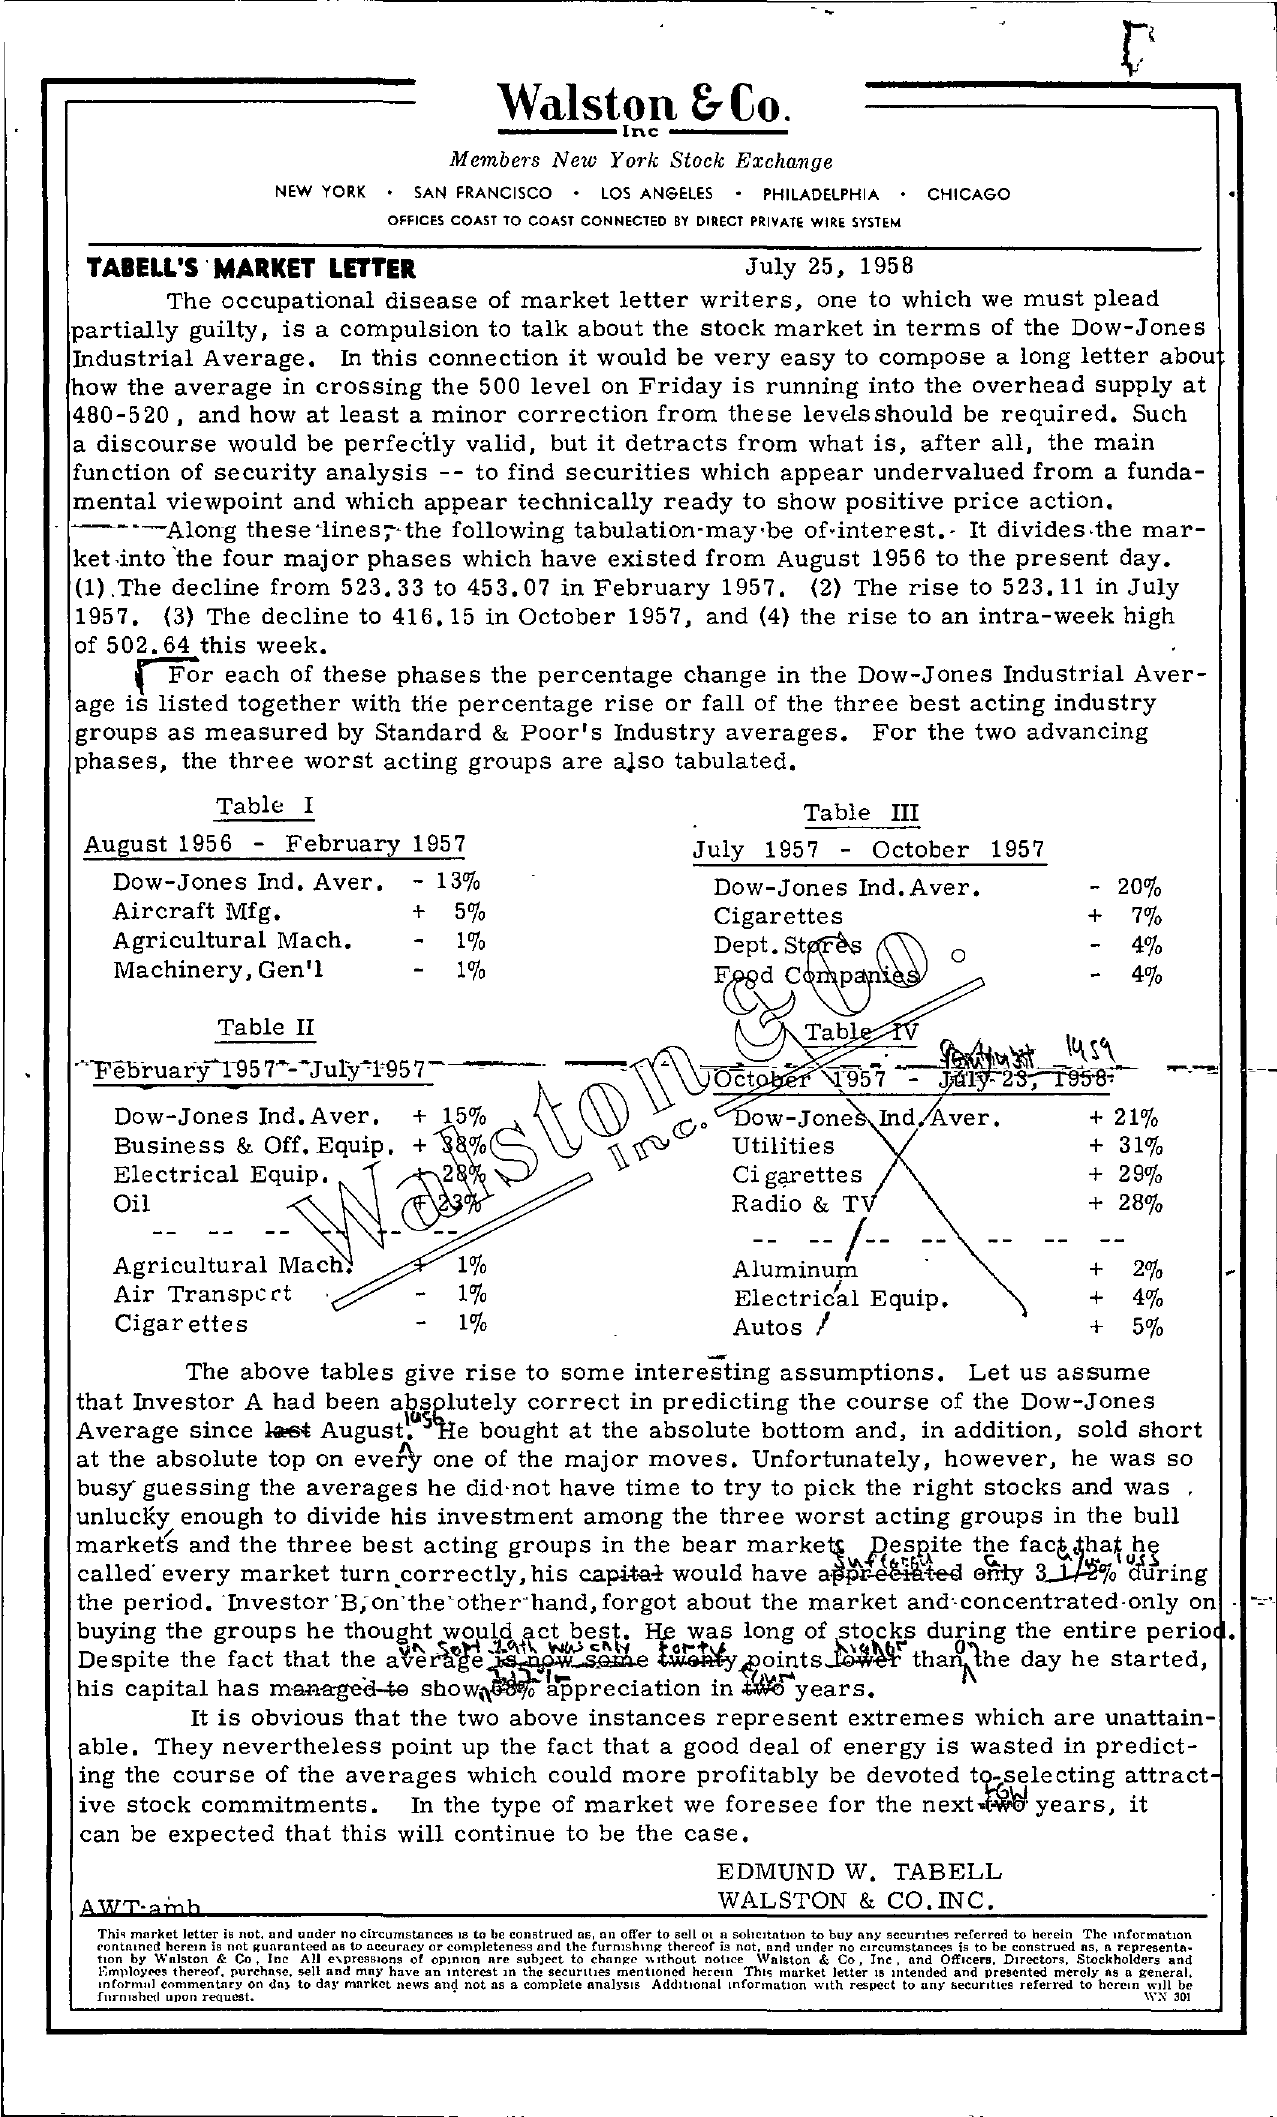 Tabell's Market Letter - July 25, 1958